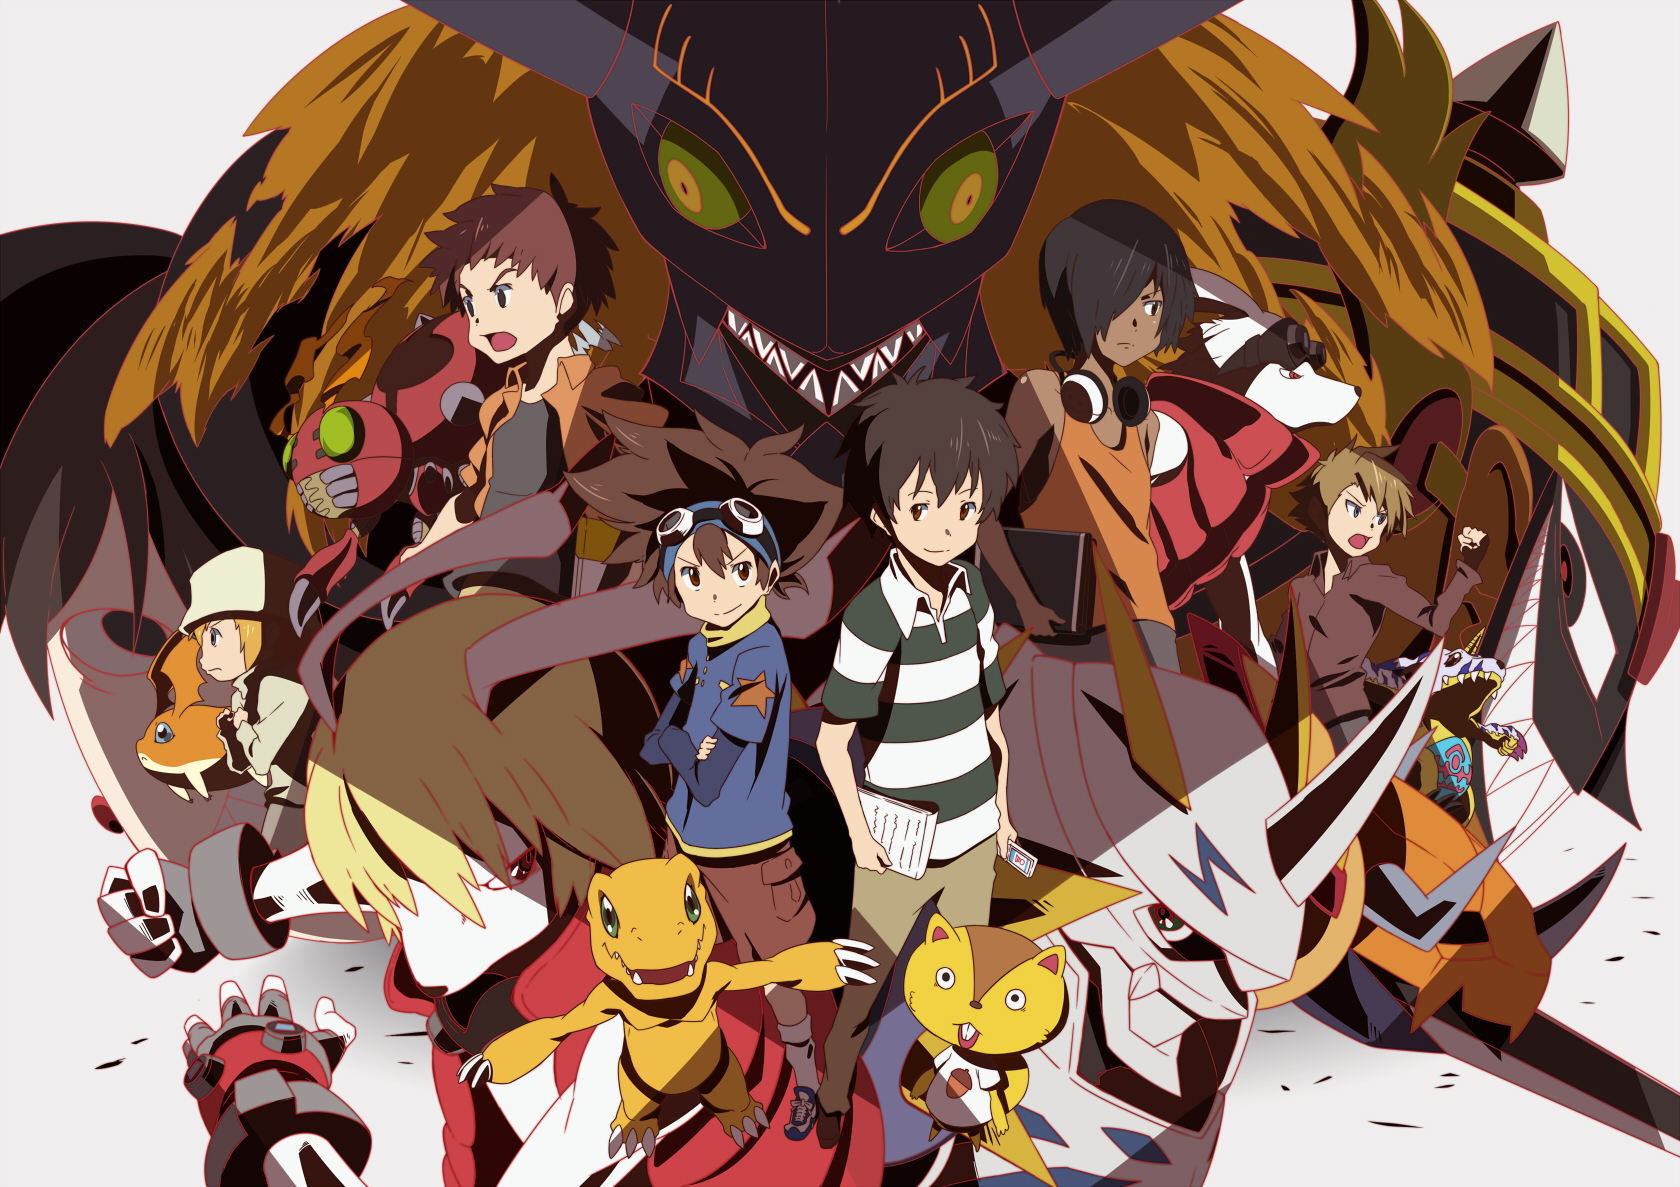 Digimon x summer wars wallpaper and background image - Anime war wallpaper ...